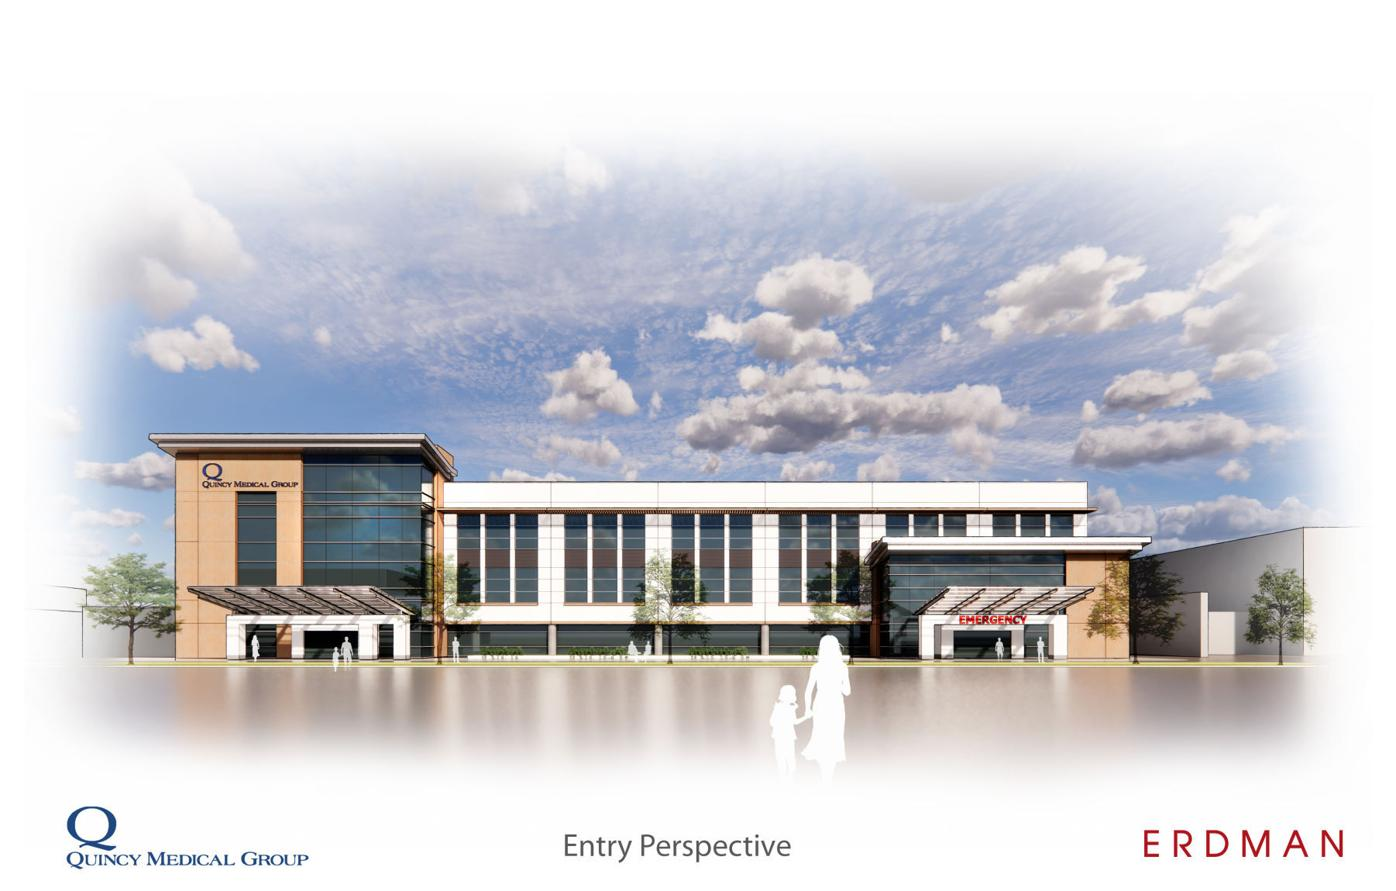 Quincy Medical Group Hospital - Entry Perspective.jpg